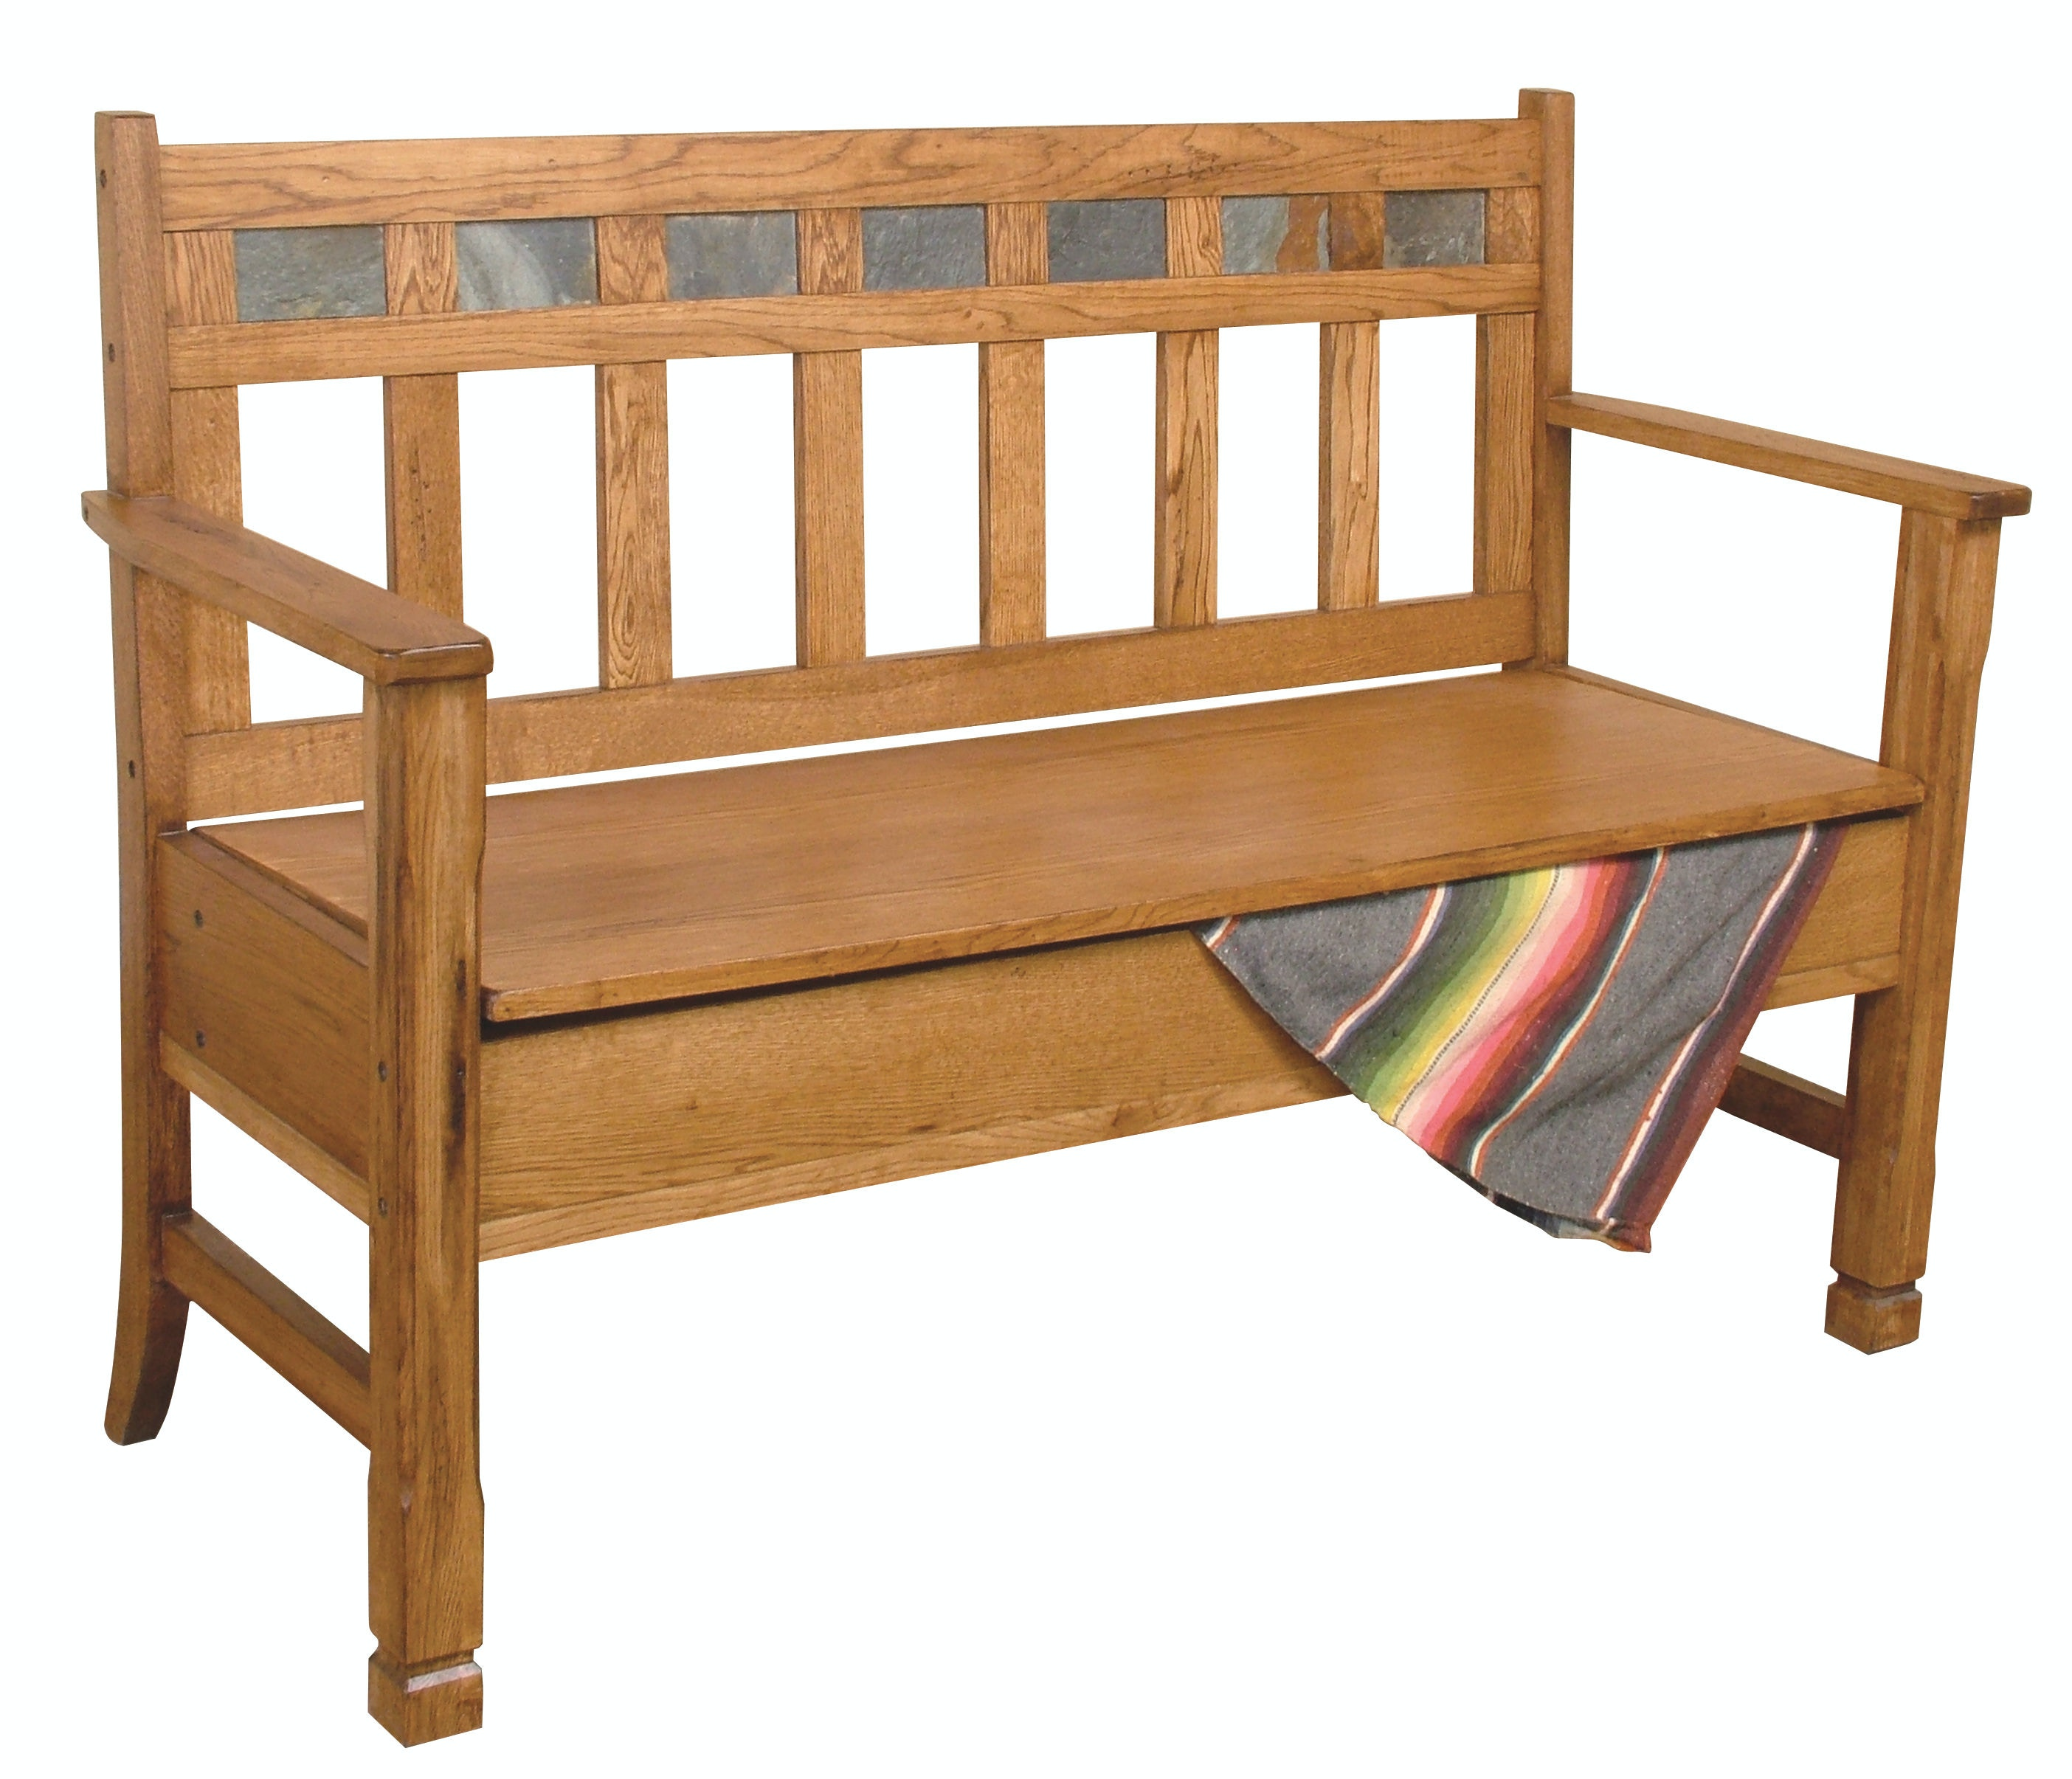 Sunny Designs Bench 42 With Storage/Wooden Seat Sedona 669329